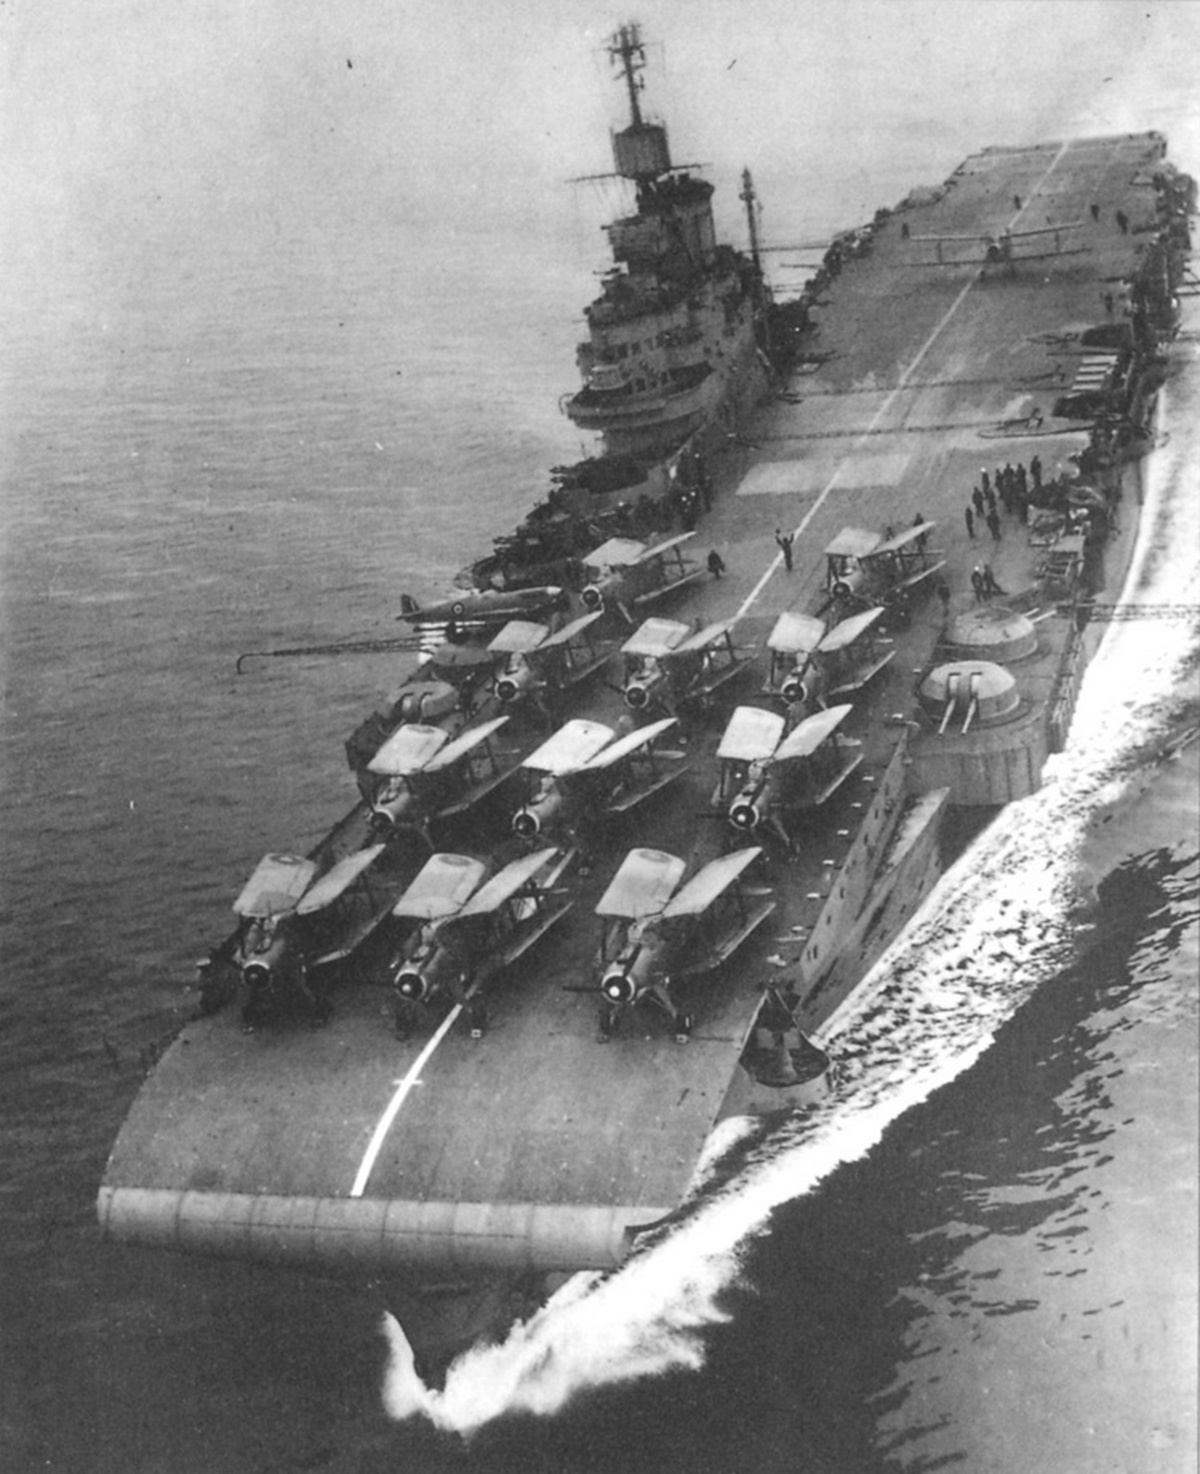 HMS INDOMITABLE, pictured in early 1943. Note the Seafire on the outrigger just behind S2 4.5in and in front of S1 Pom Pom.